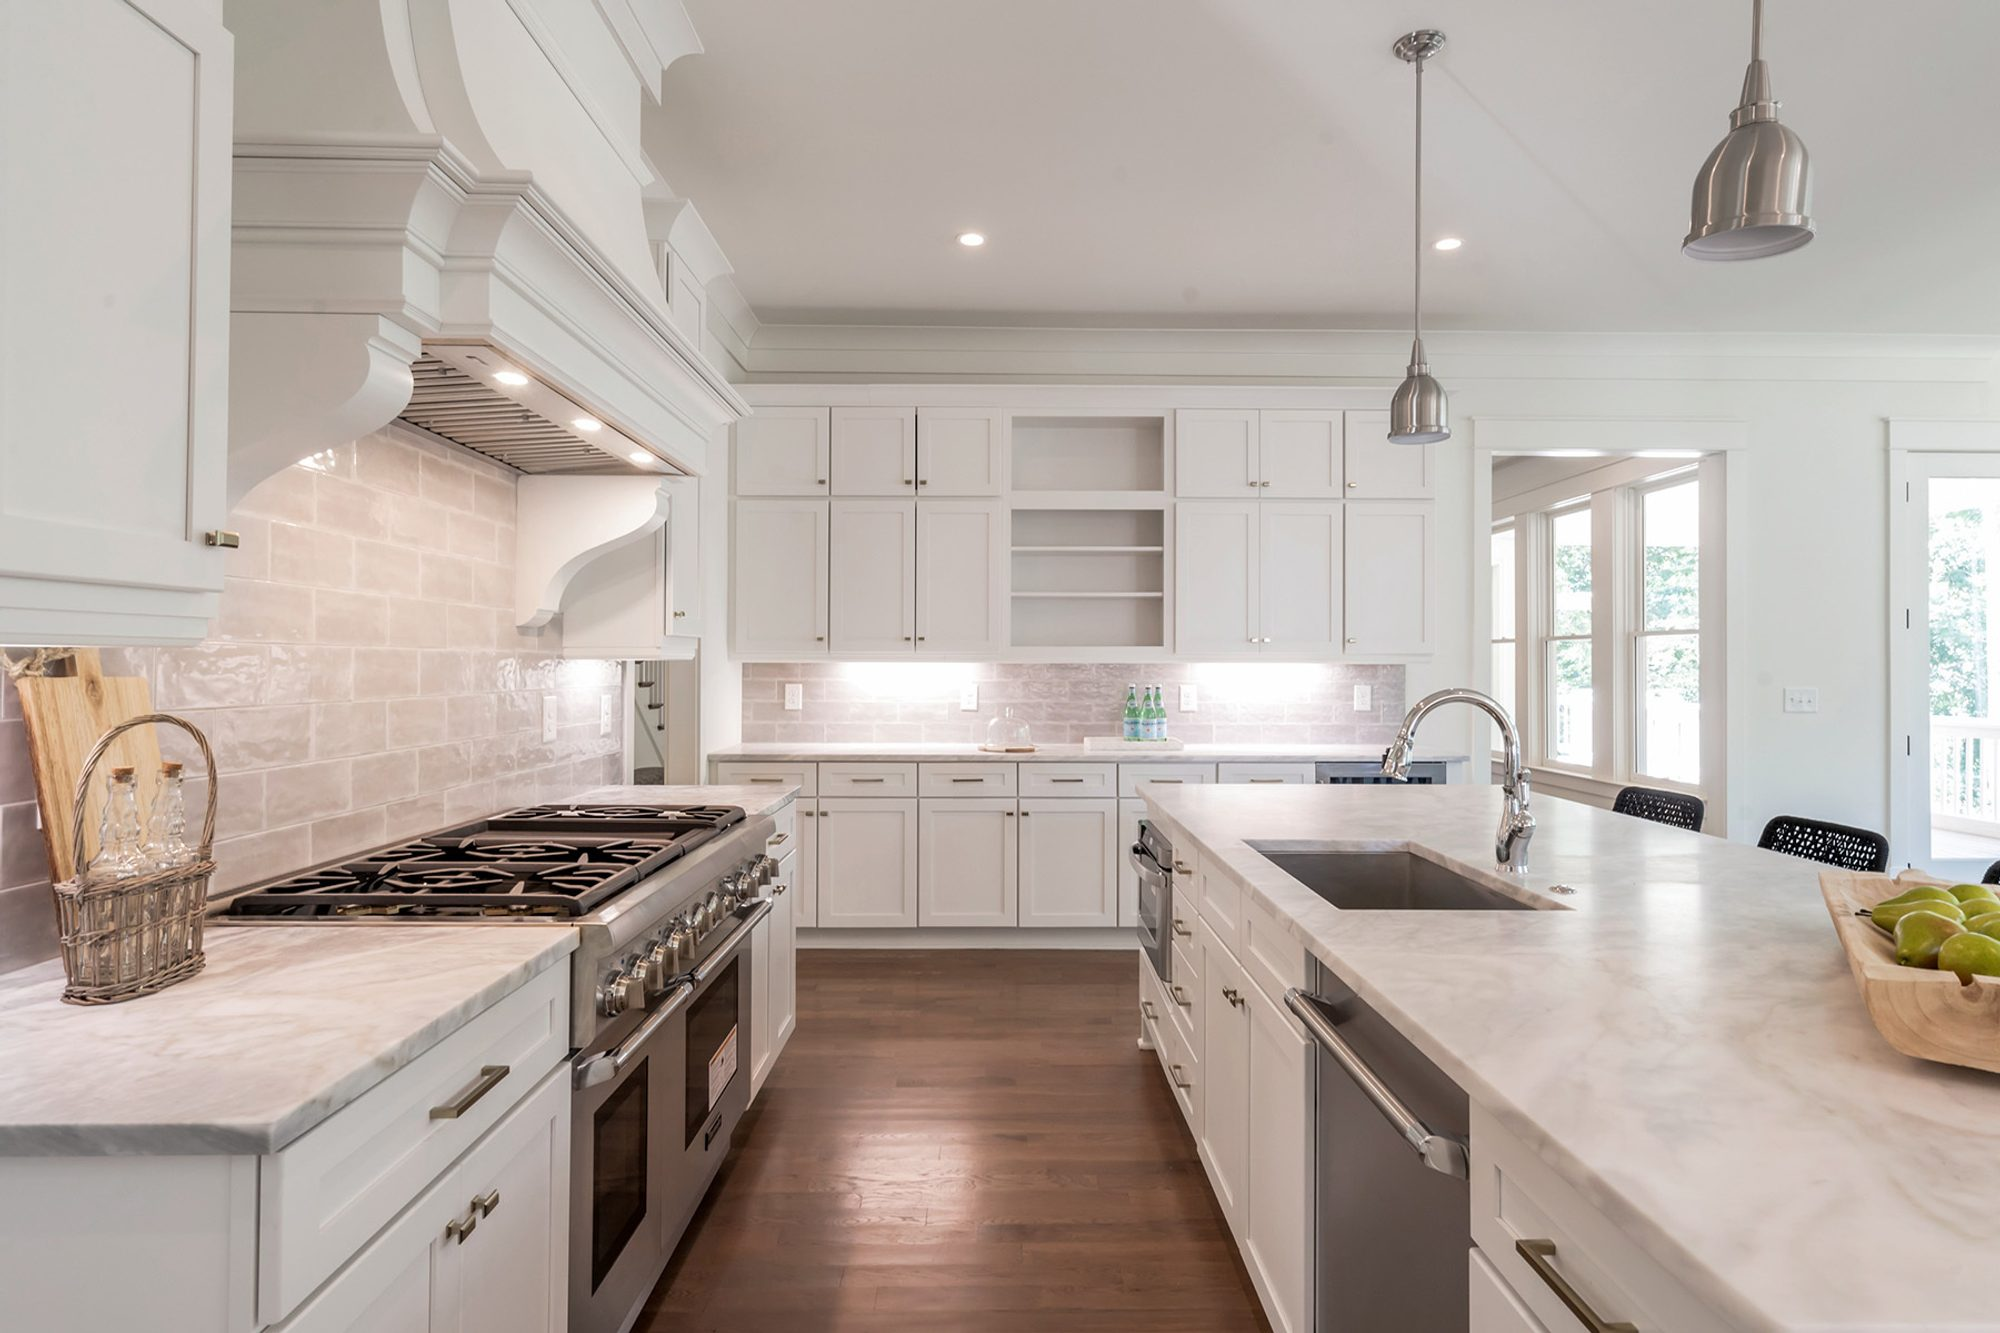 Luxury kitchen featuring white shaker style cabinets, matching custom range hood and white walls.